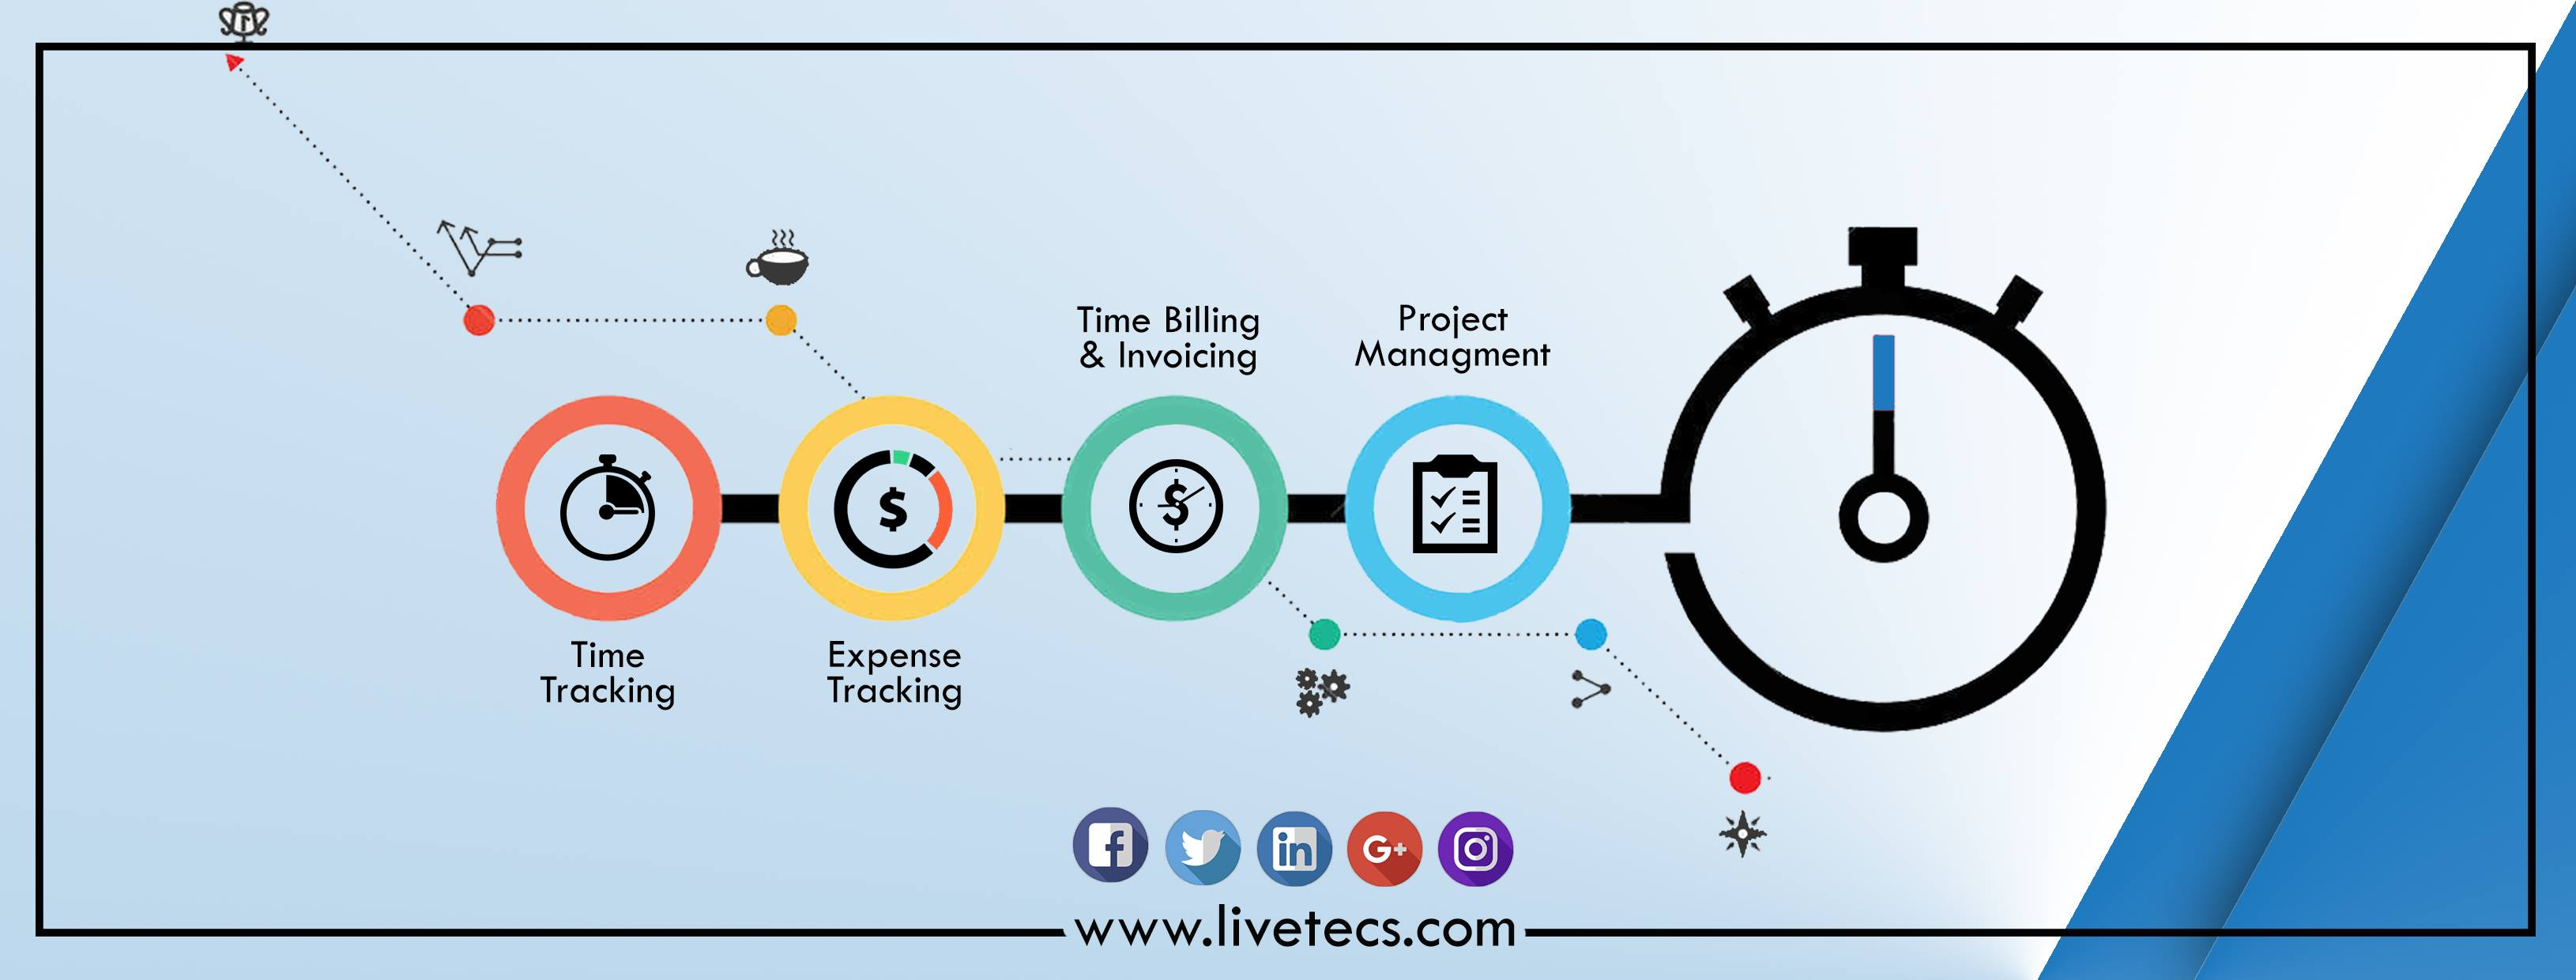 About Livetecs Homepage